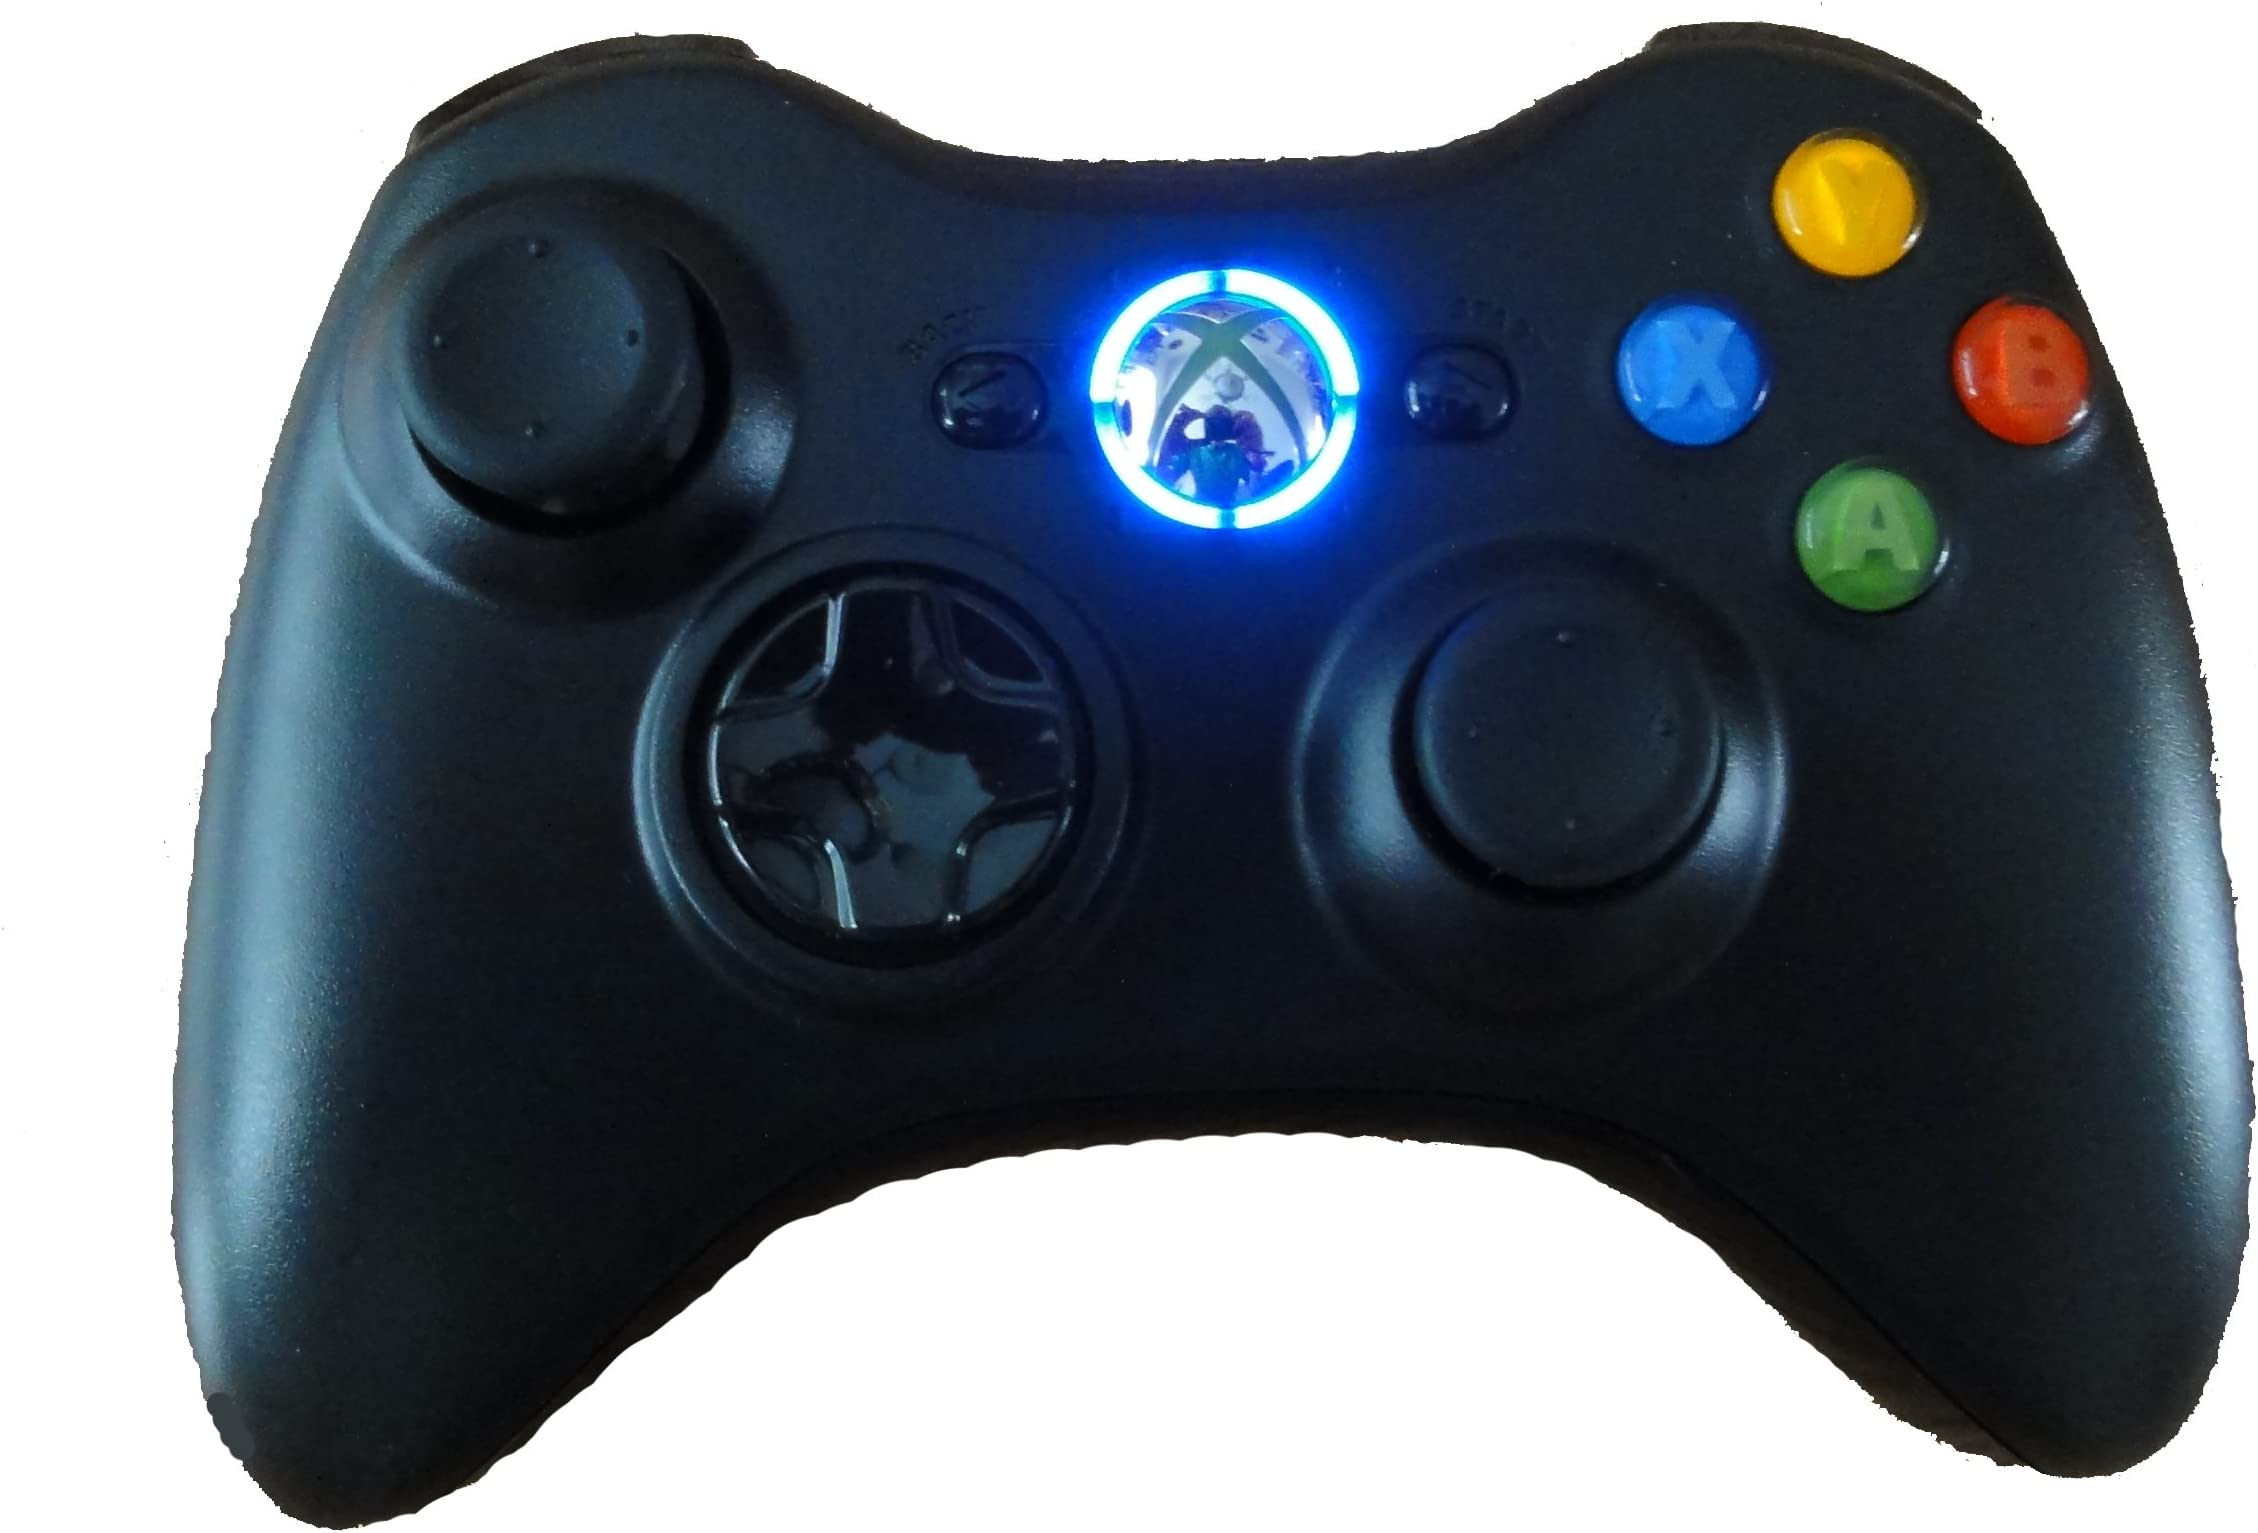 Black Xbox 360 Modded Controller (Rapid Fire, Blue LEDs) COD Ghosts, Call  of Duty Black Ops 2, MW2, MW3, Halo, GTA  many more